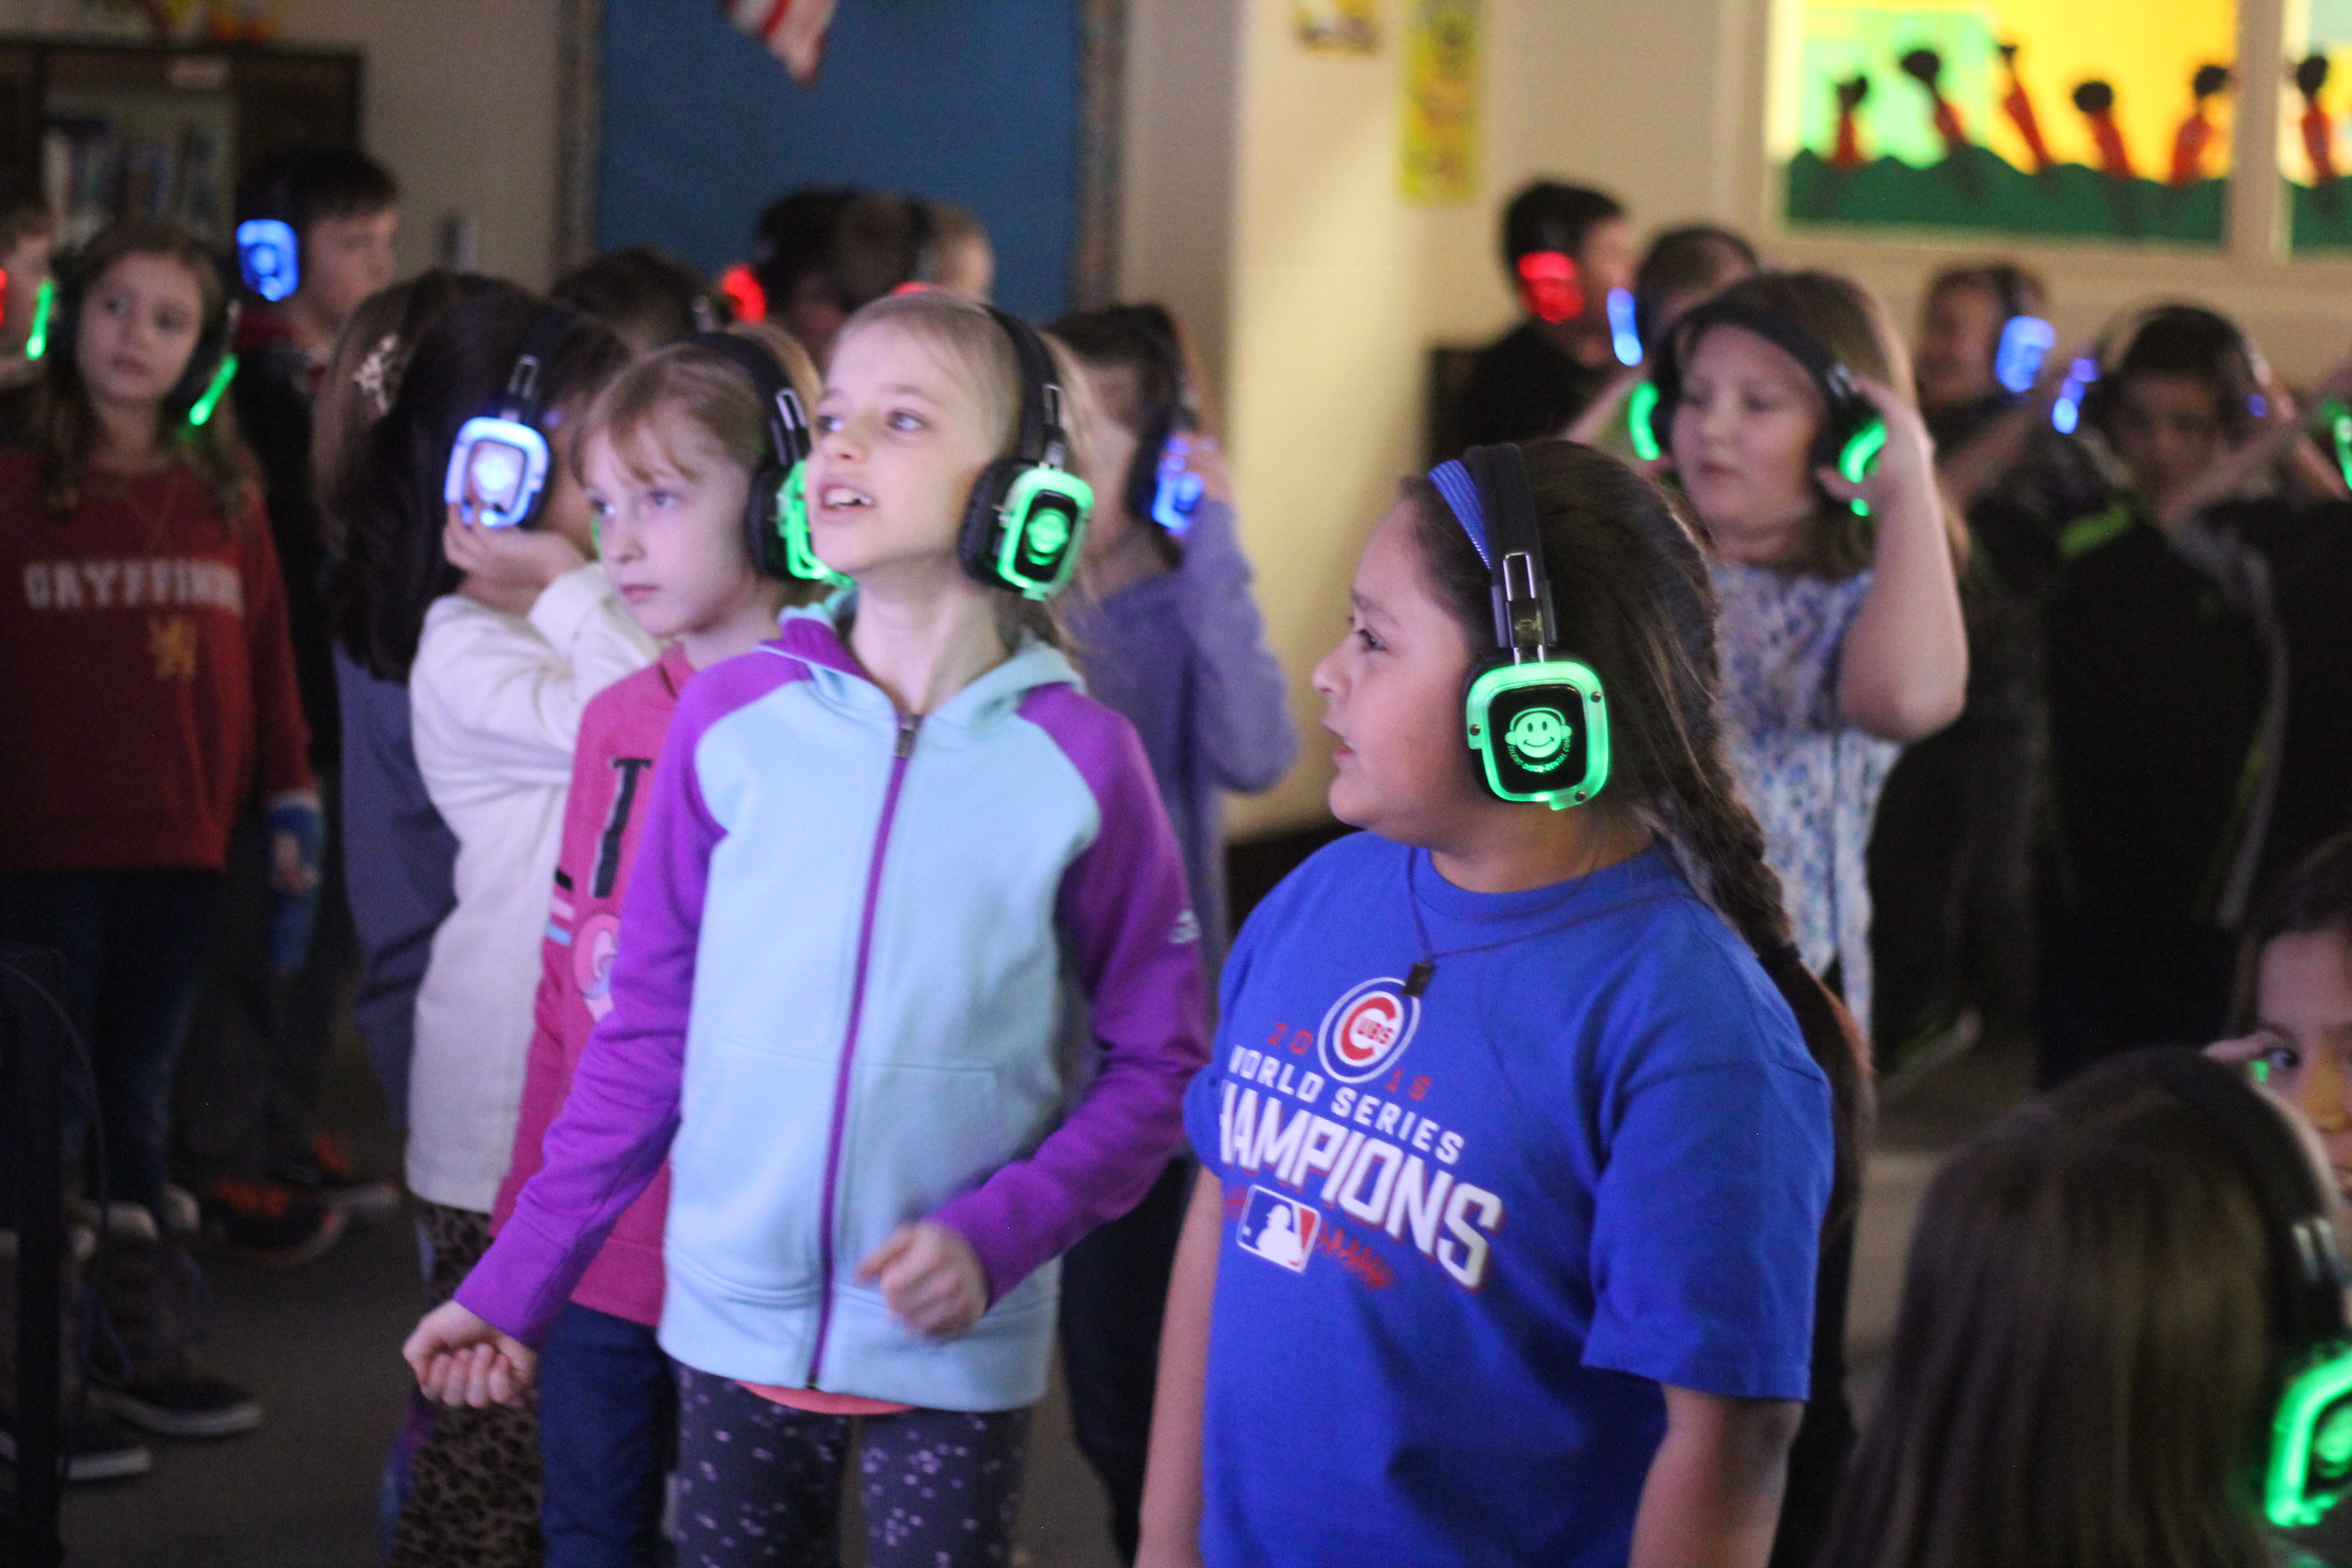 Students watch music videos and listen to them with headsets.